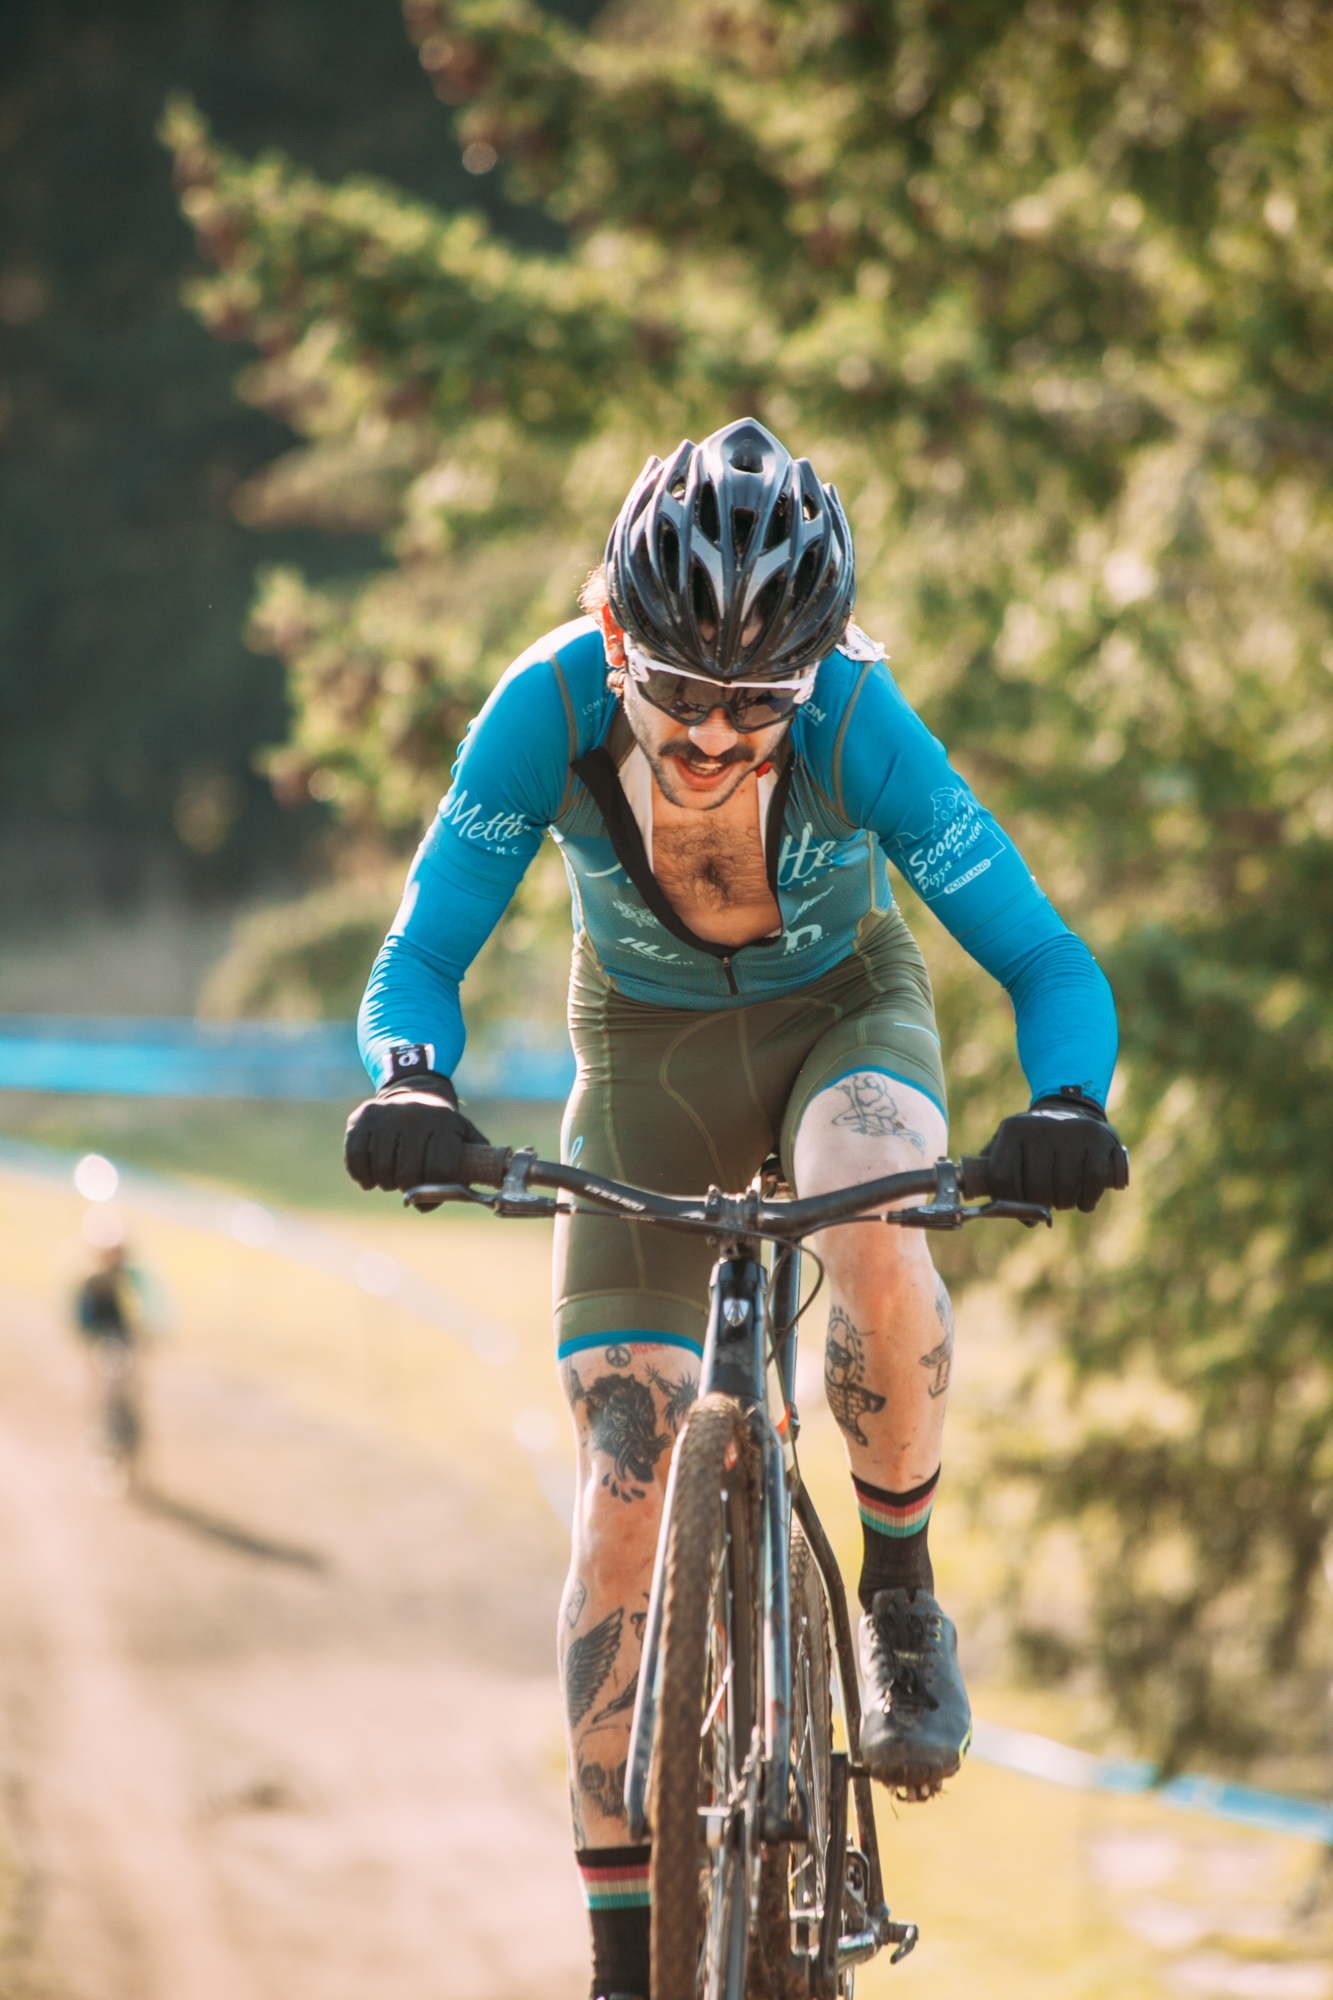 Cyclocross18_CCCX_RainierHS-226-mettlecycling.jpg